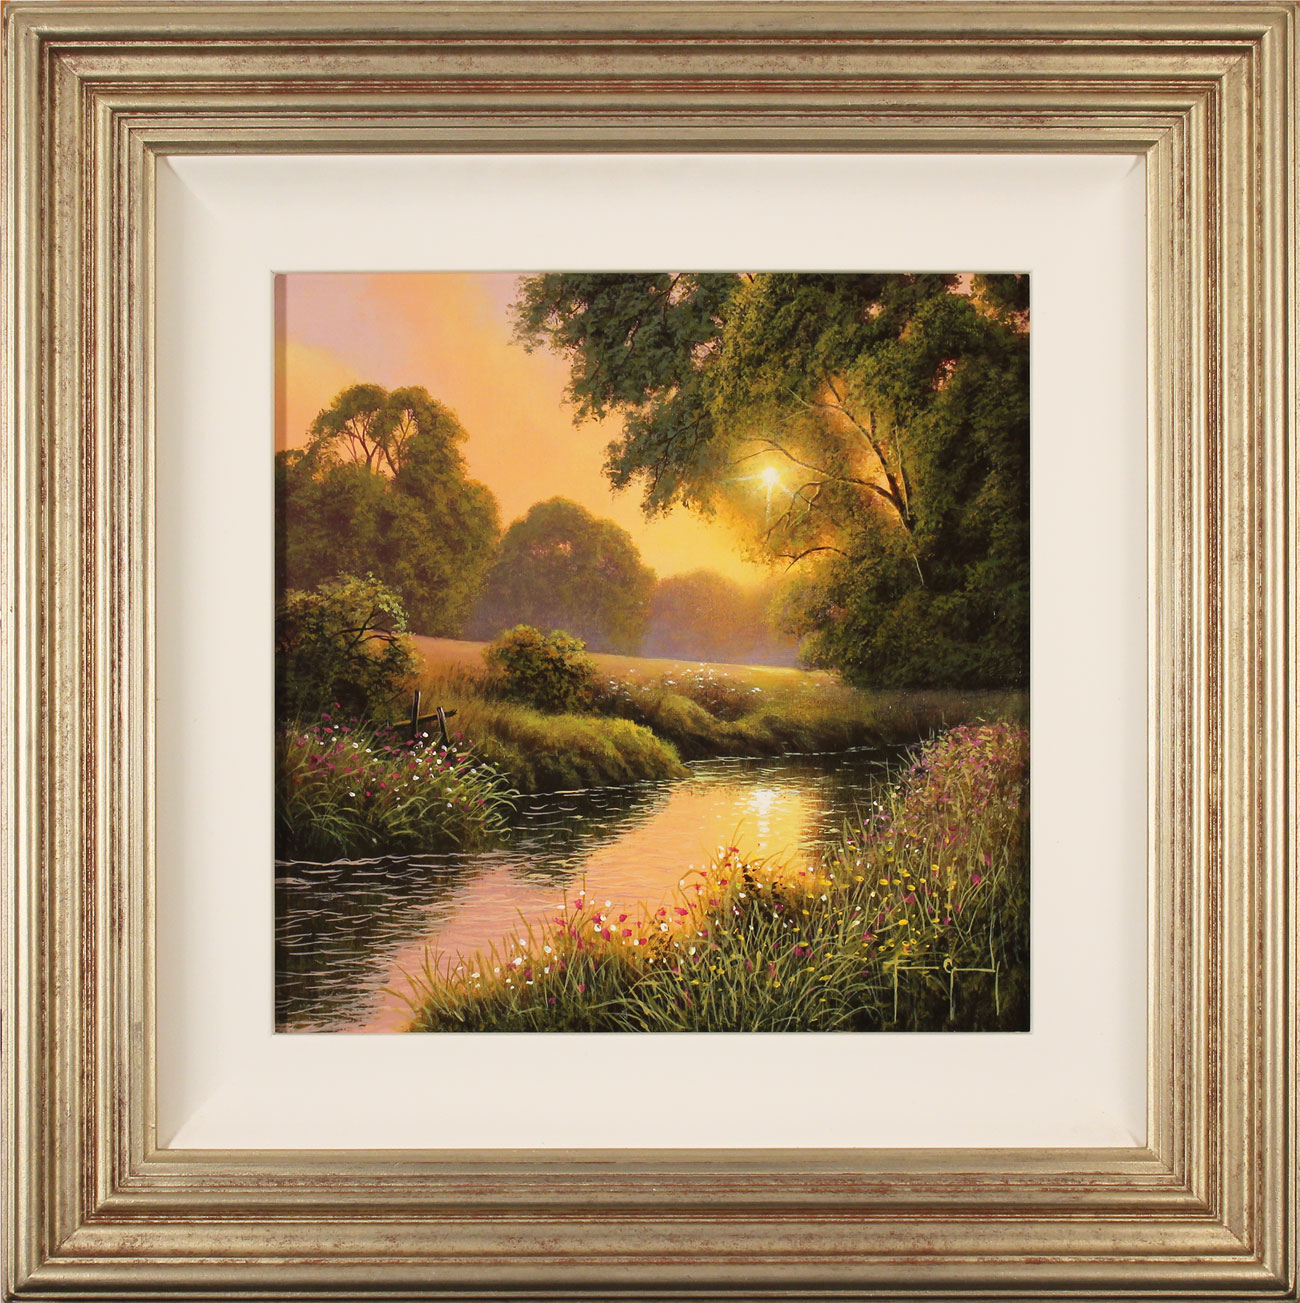 Terry Grundy, Original oil painting on panel, Summer Sunset, click to enlarge